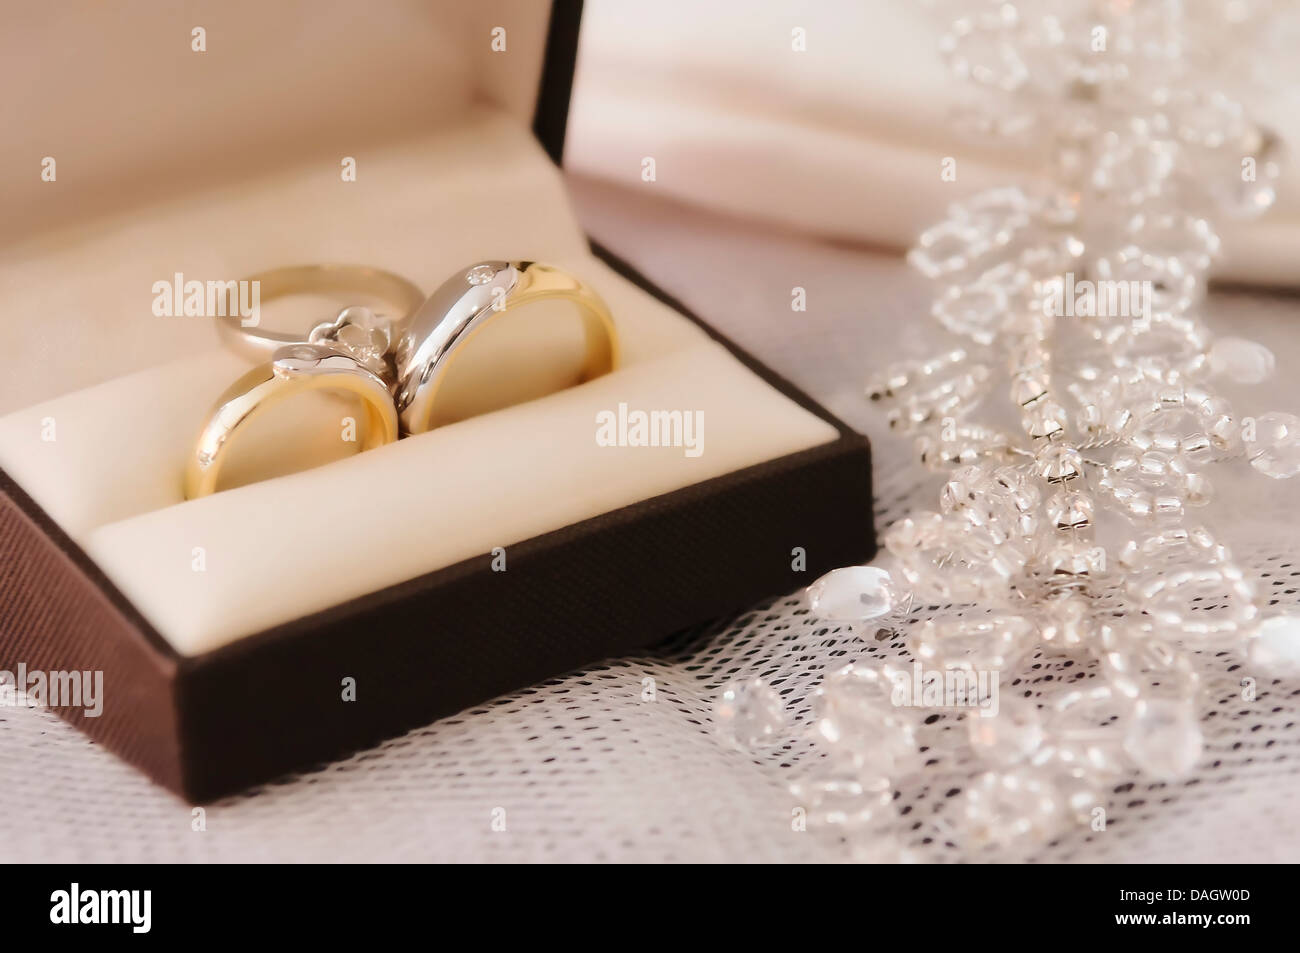 Gold Wedding Rings With Engagement Ring Inside Box